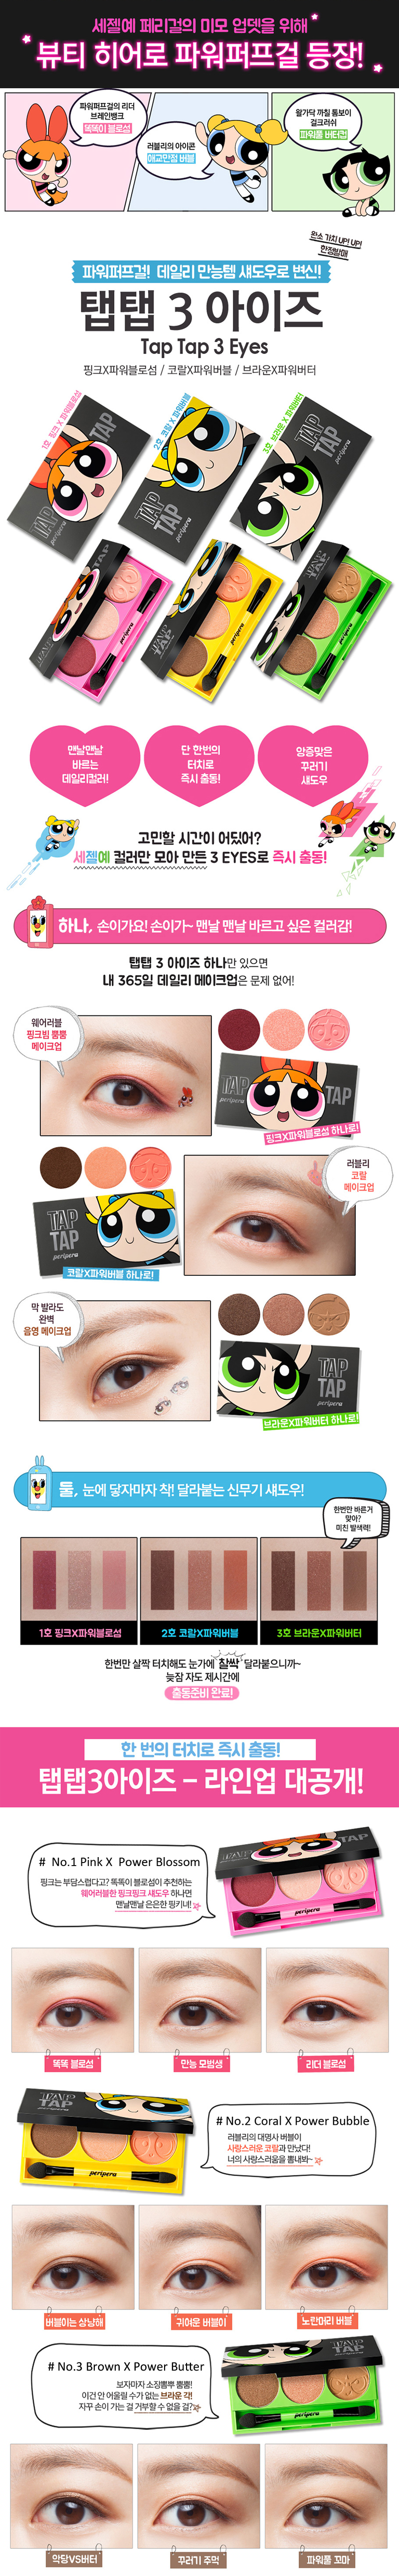 peripera-tap-tap-3-eyes-powerpuff-girls-1.jpg